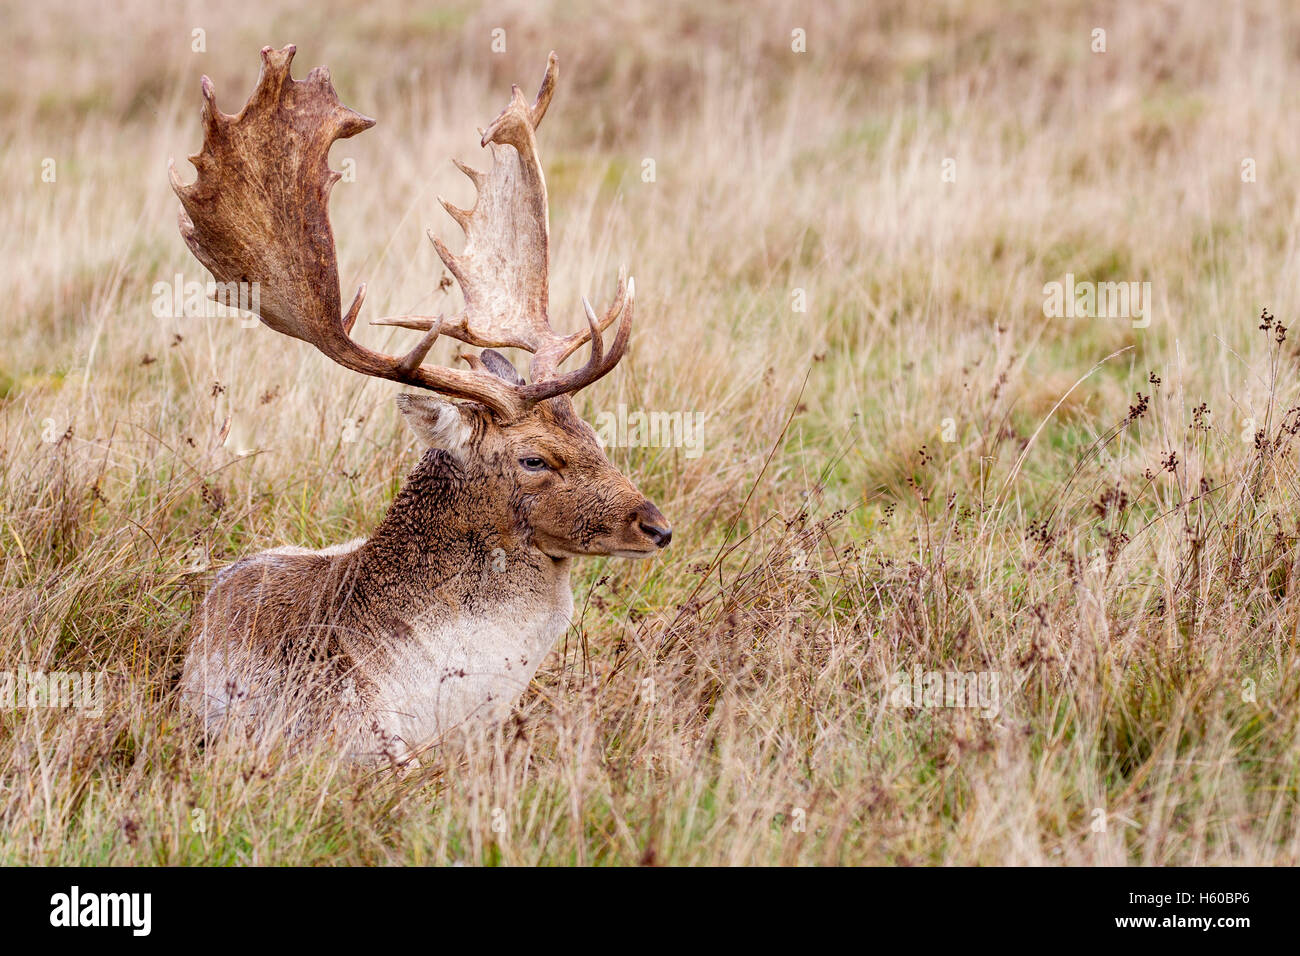 Fallow deer Dama dama buck laying in grassland taken early morning during the rut, Petworth West Sussex England - Stock Image